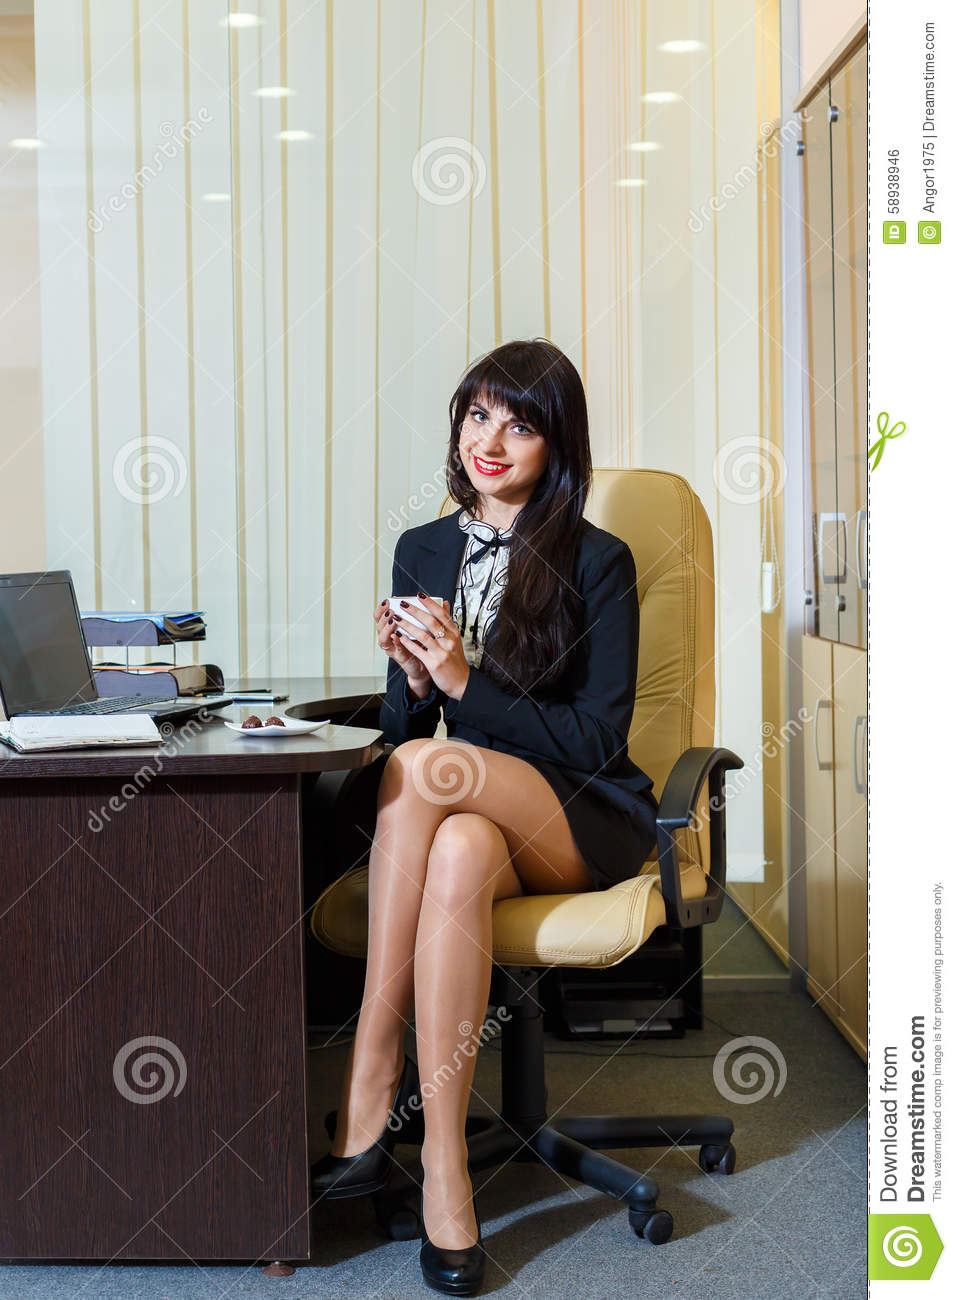 skirt Office secretary legs short